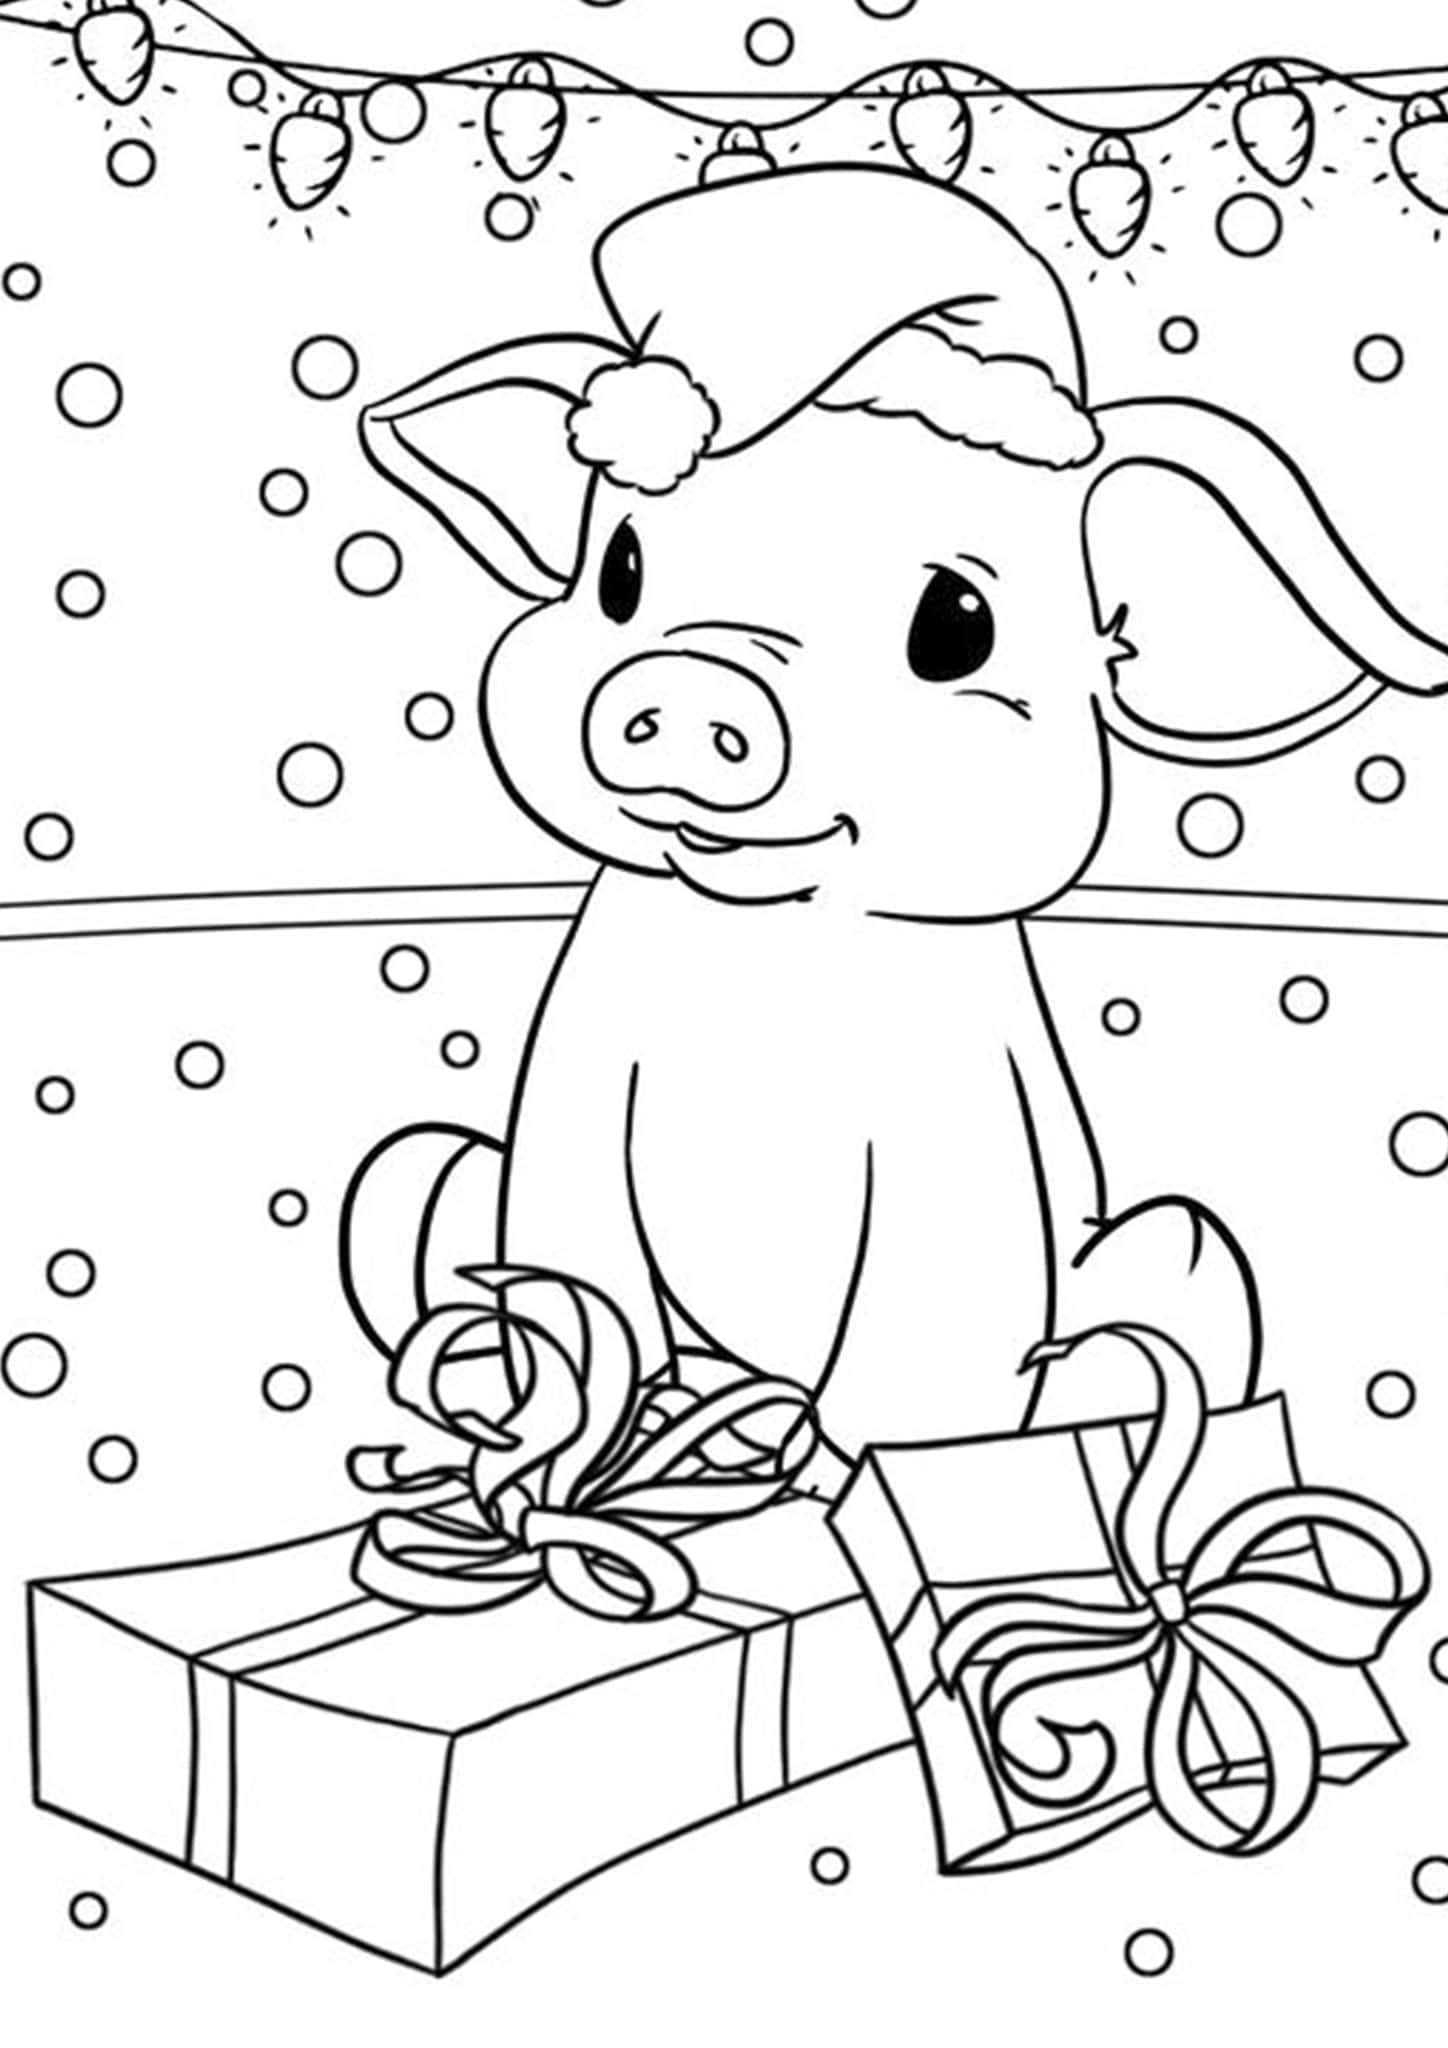 coloring pages printables disney coloring pages to download and print for free coloring pages printables 1 1